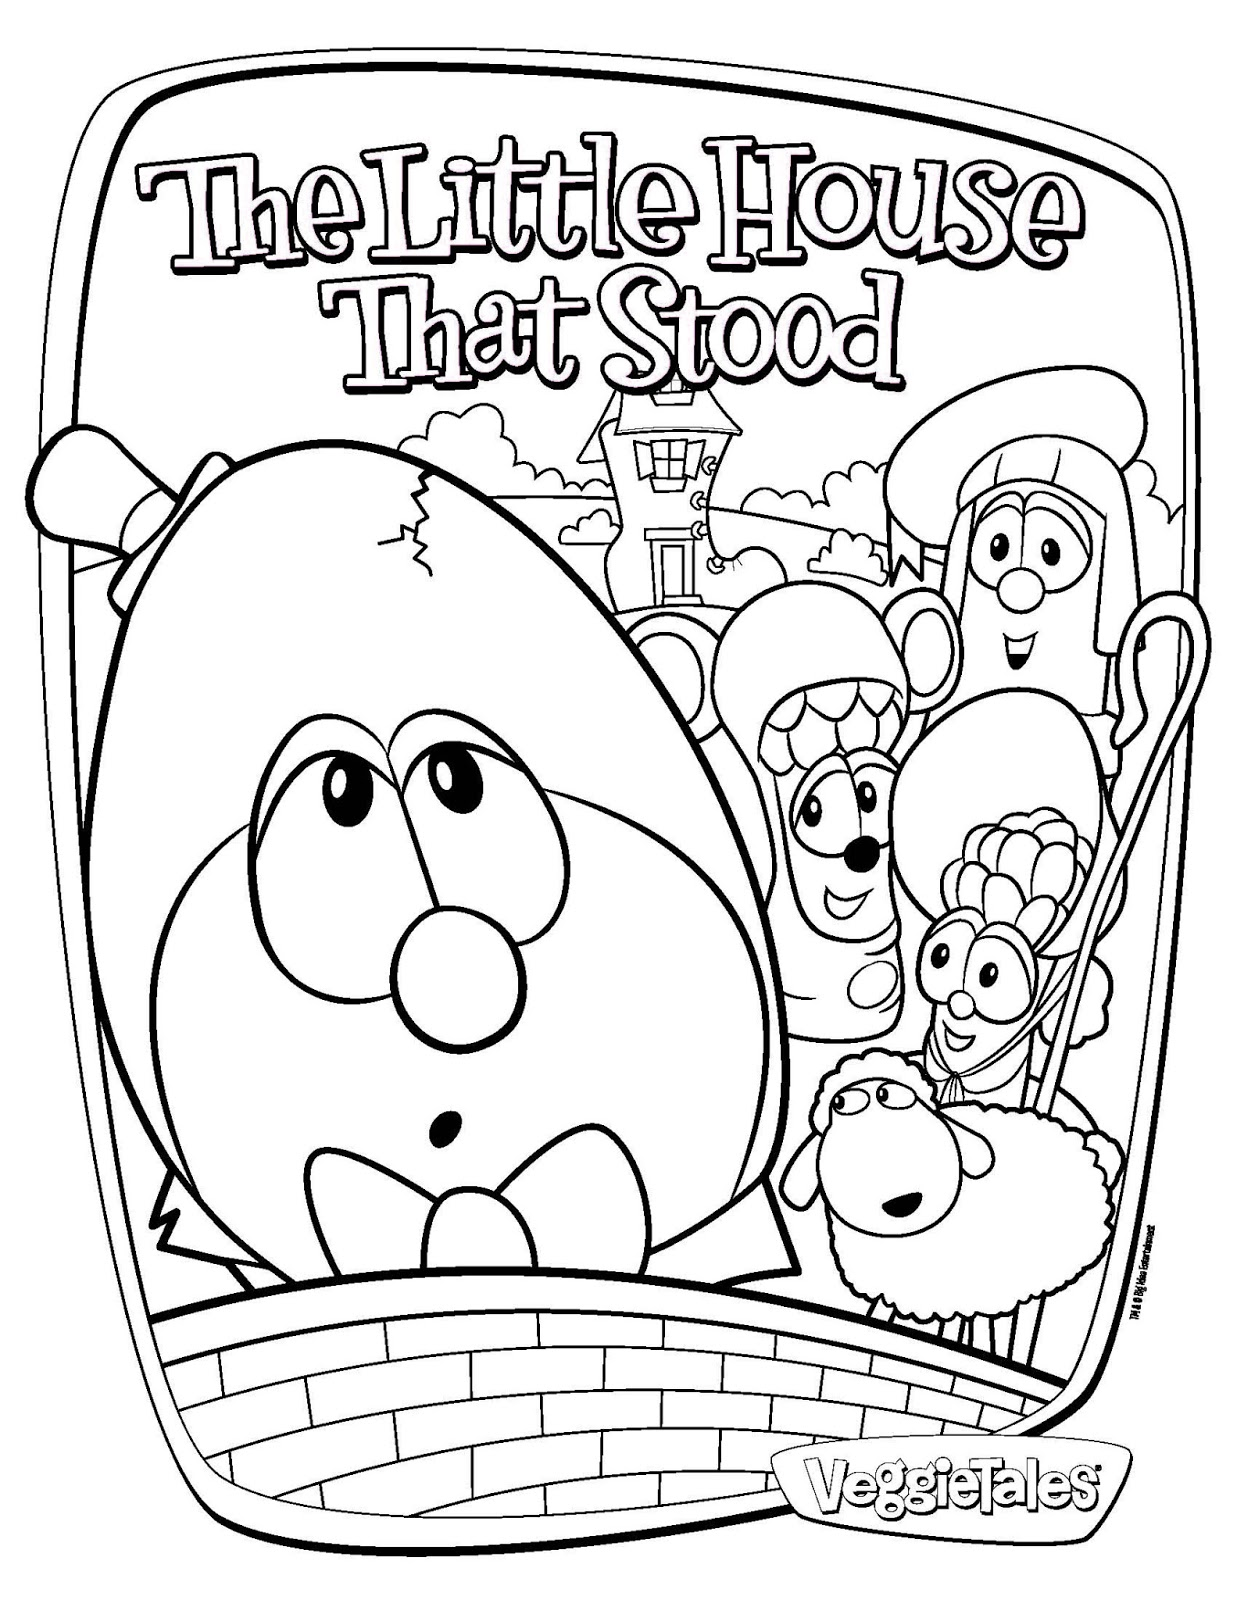 We love to homeschool veggietales the little house that for Little house coloring pages